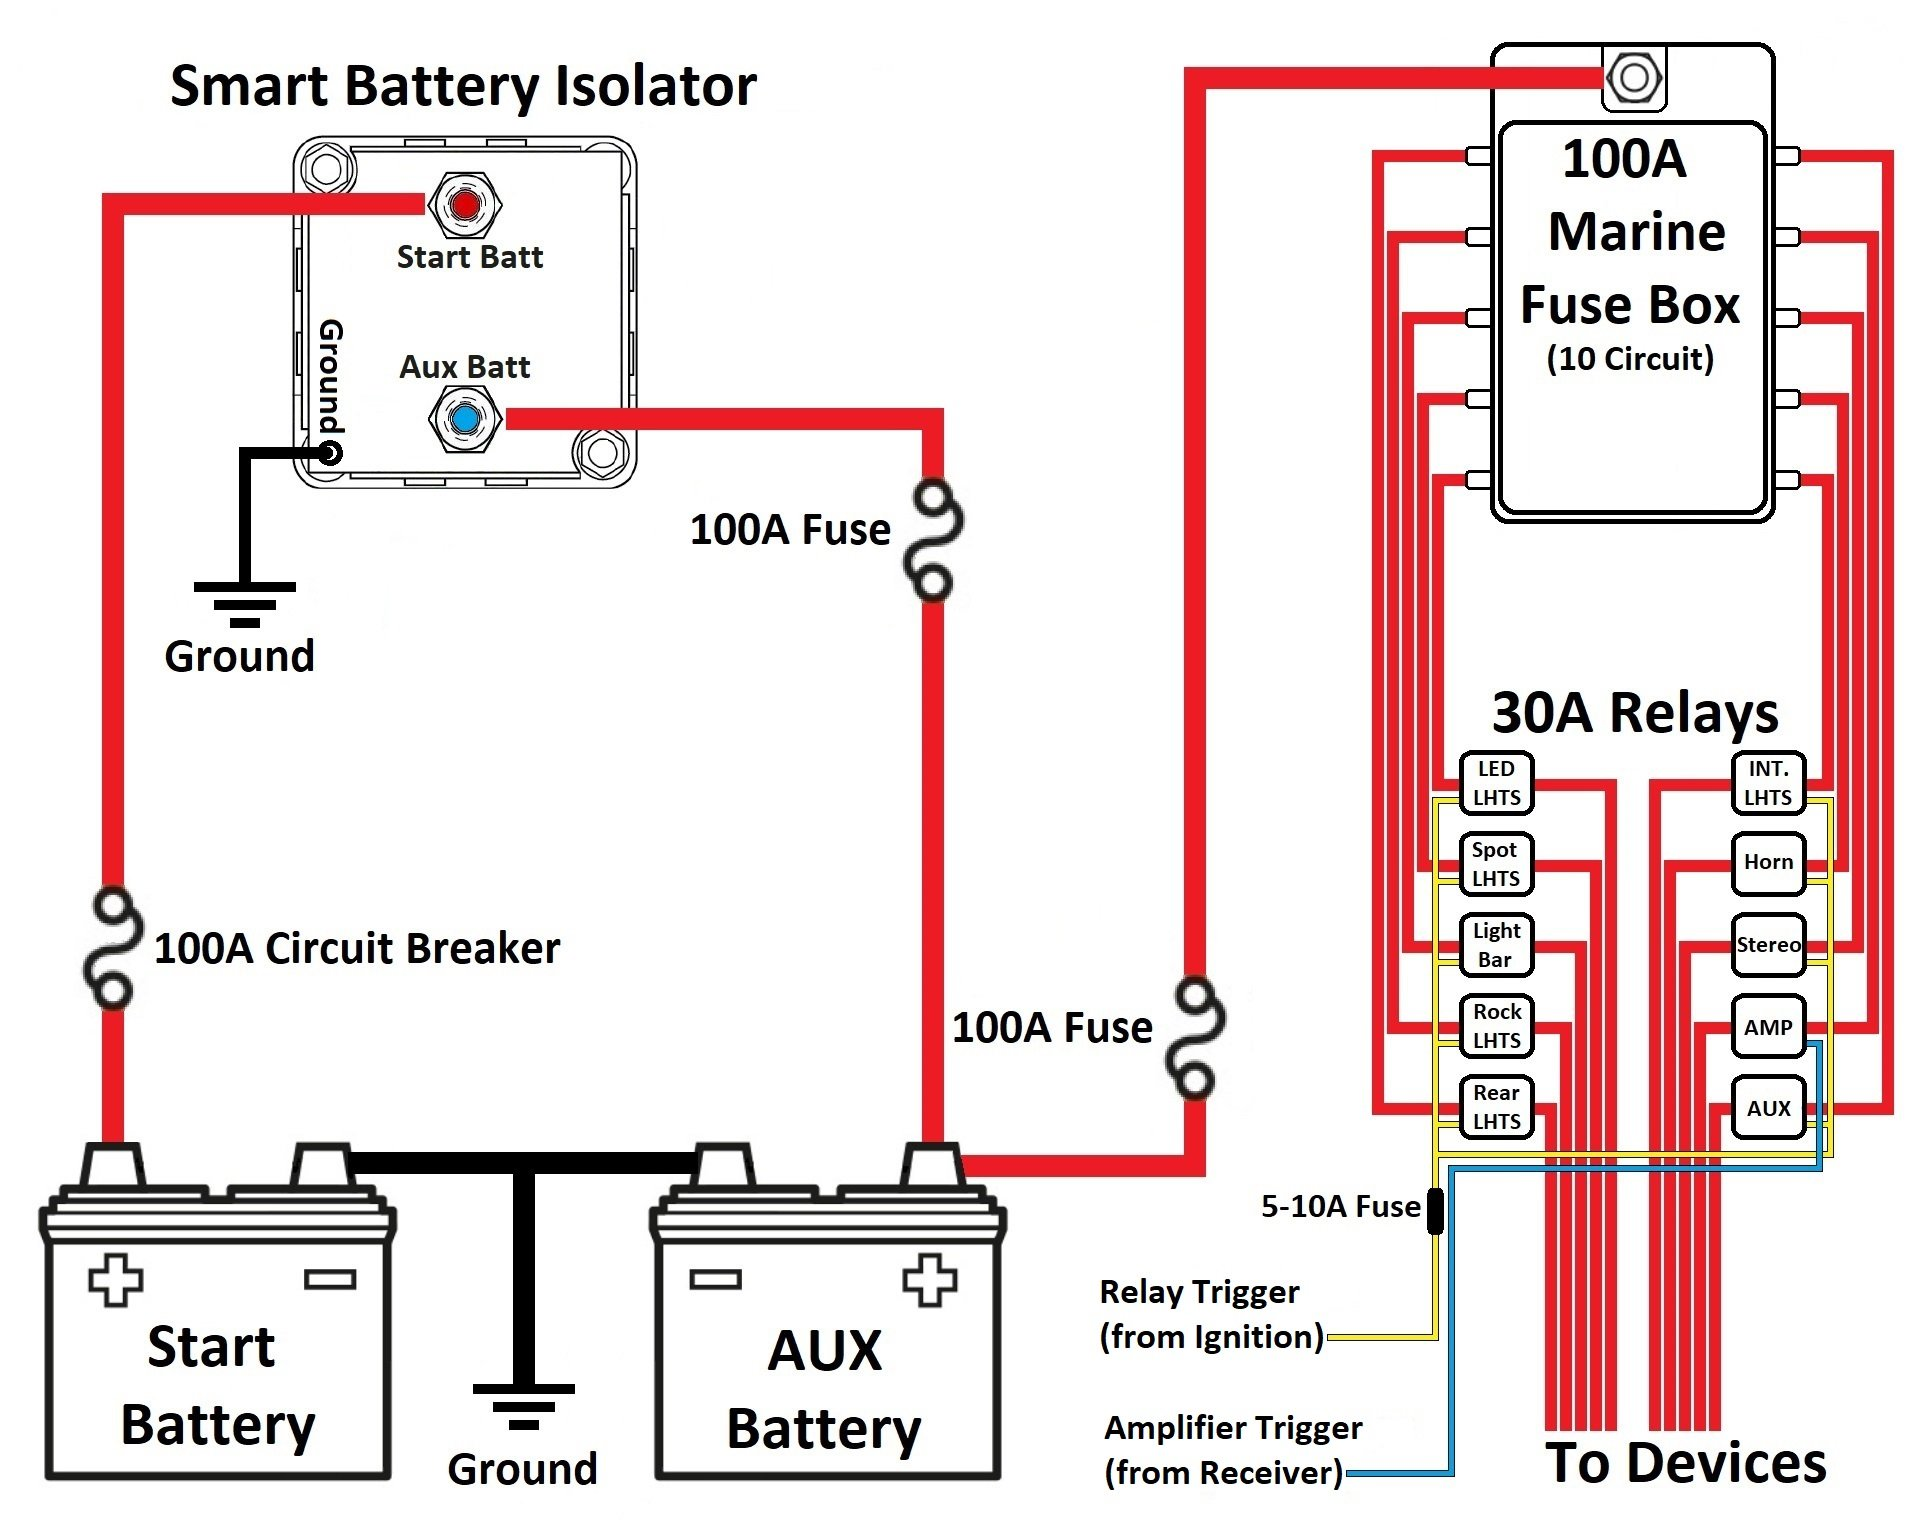 Batteries 12v Led Wiring Diagram Auxiliary Battery Caravan Data Painless Dual Harness Library Smart Isolator